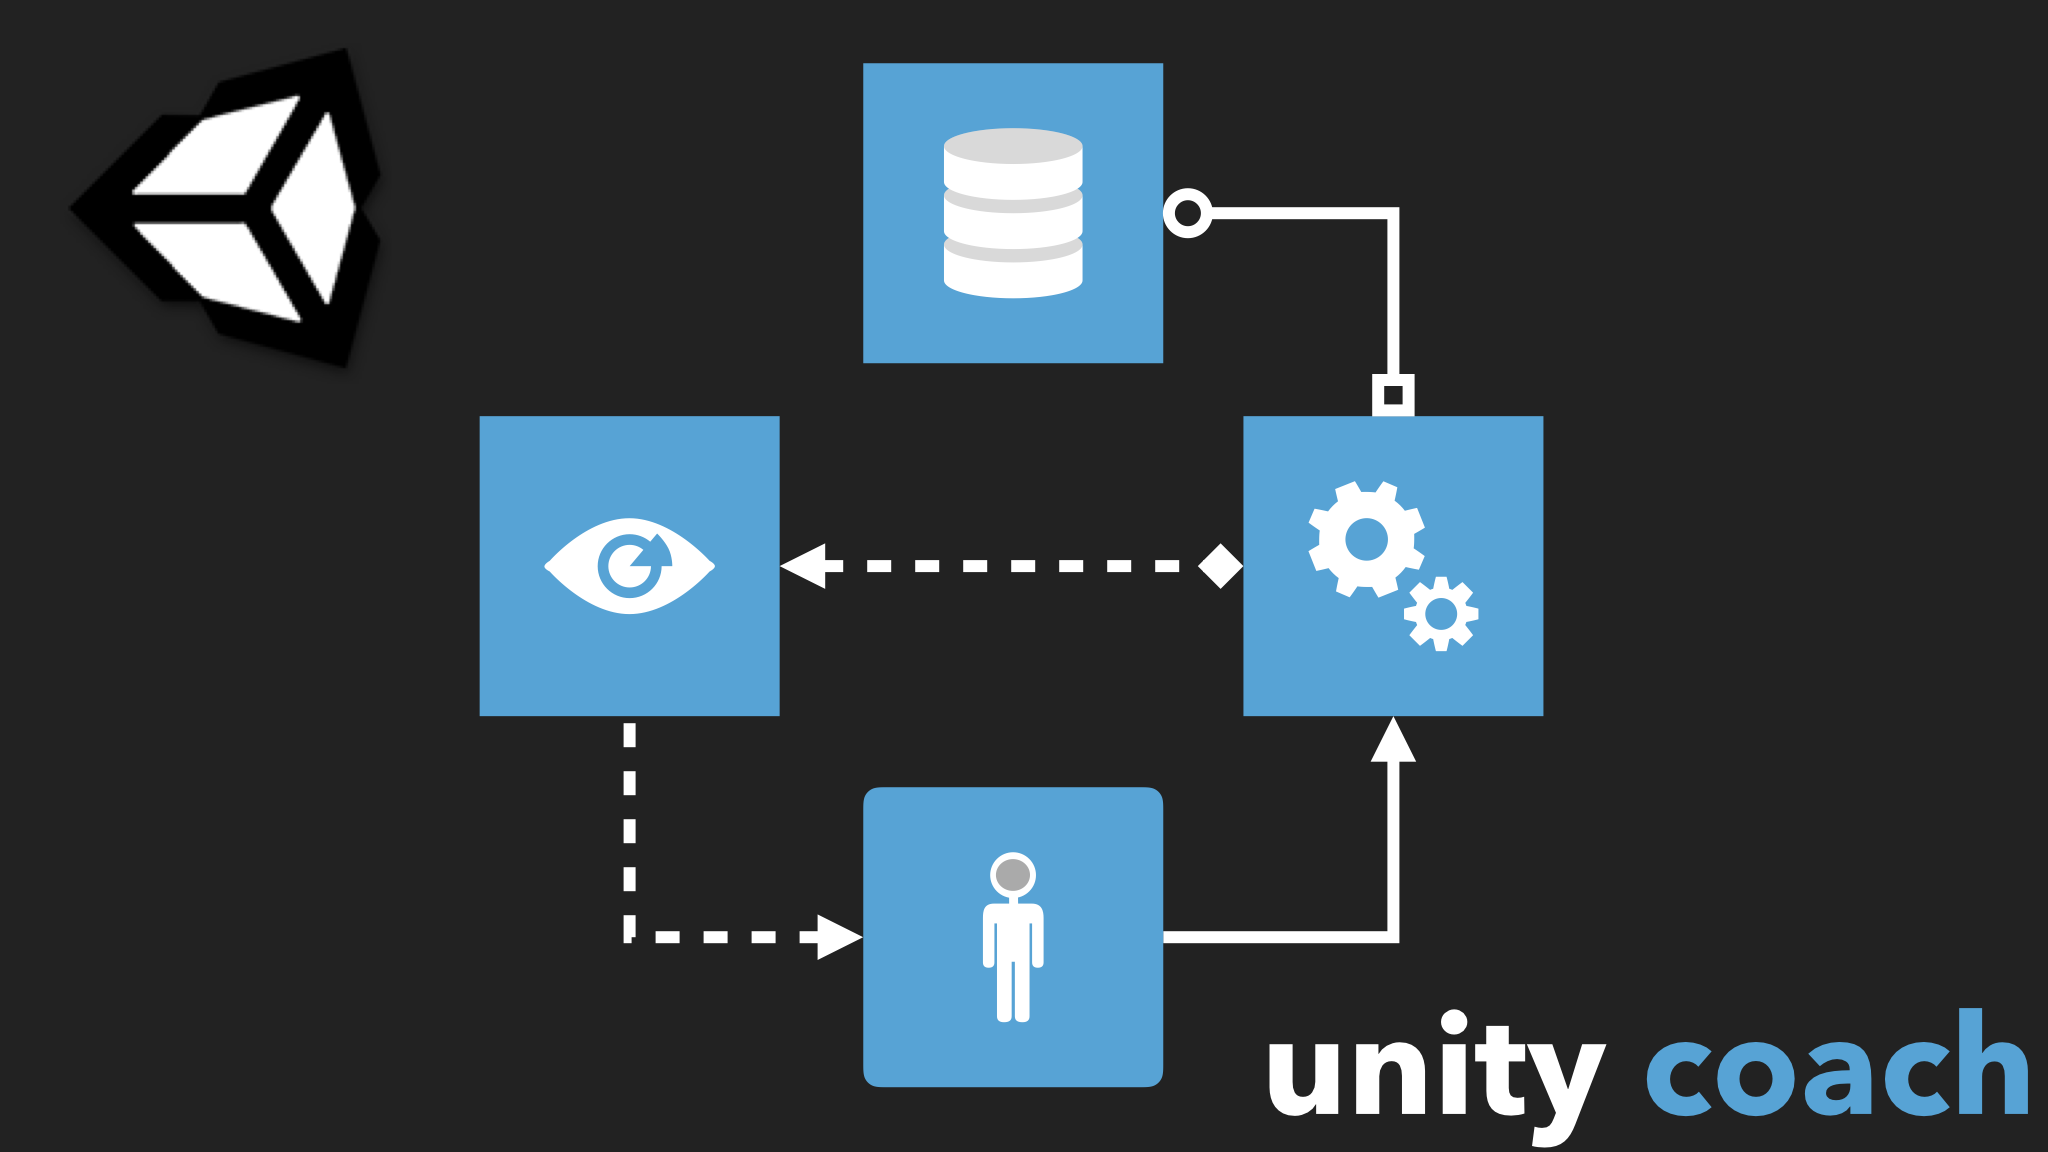 Model-View-Controller design pattern with Unity